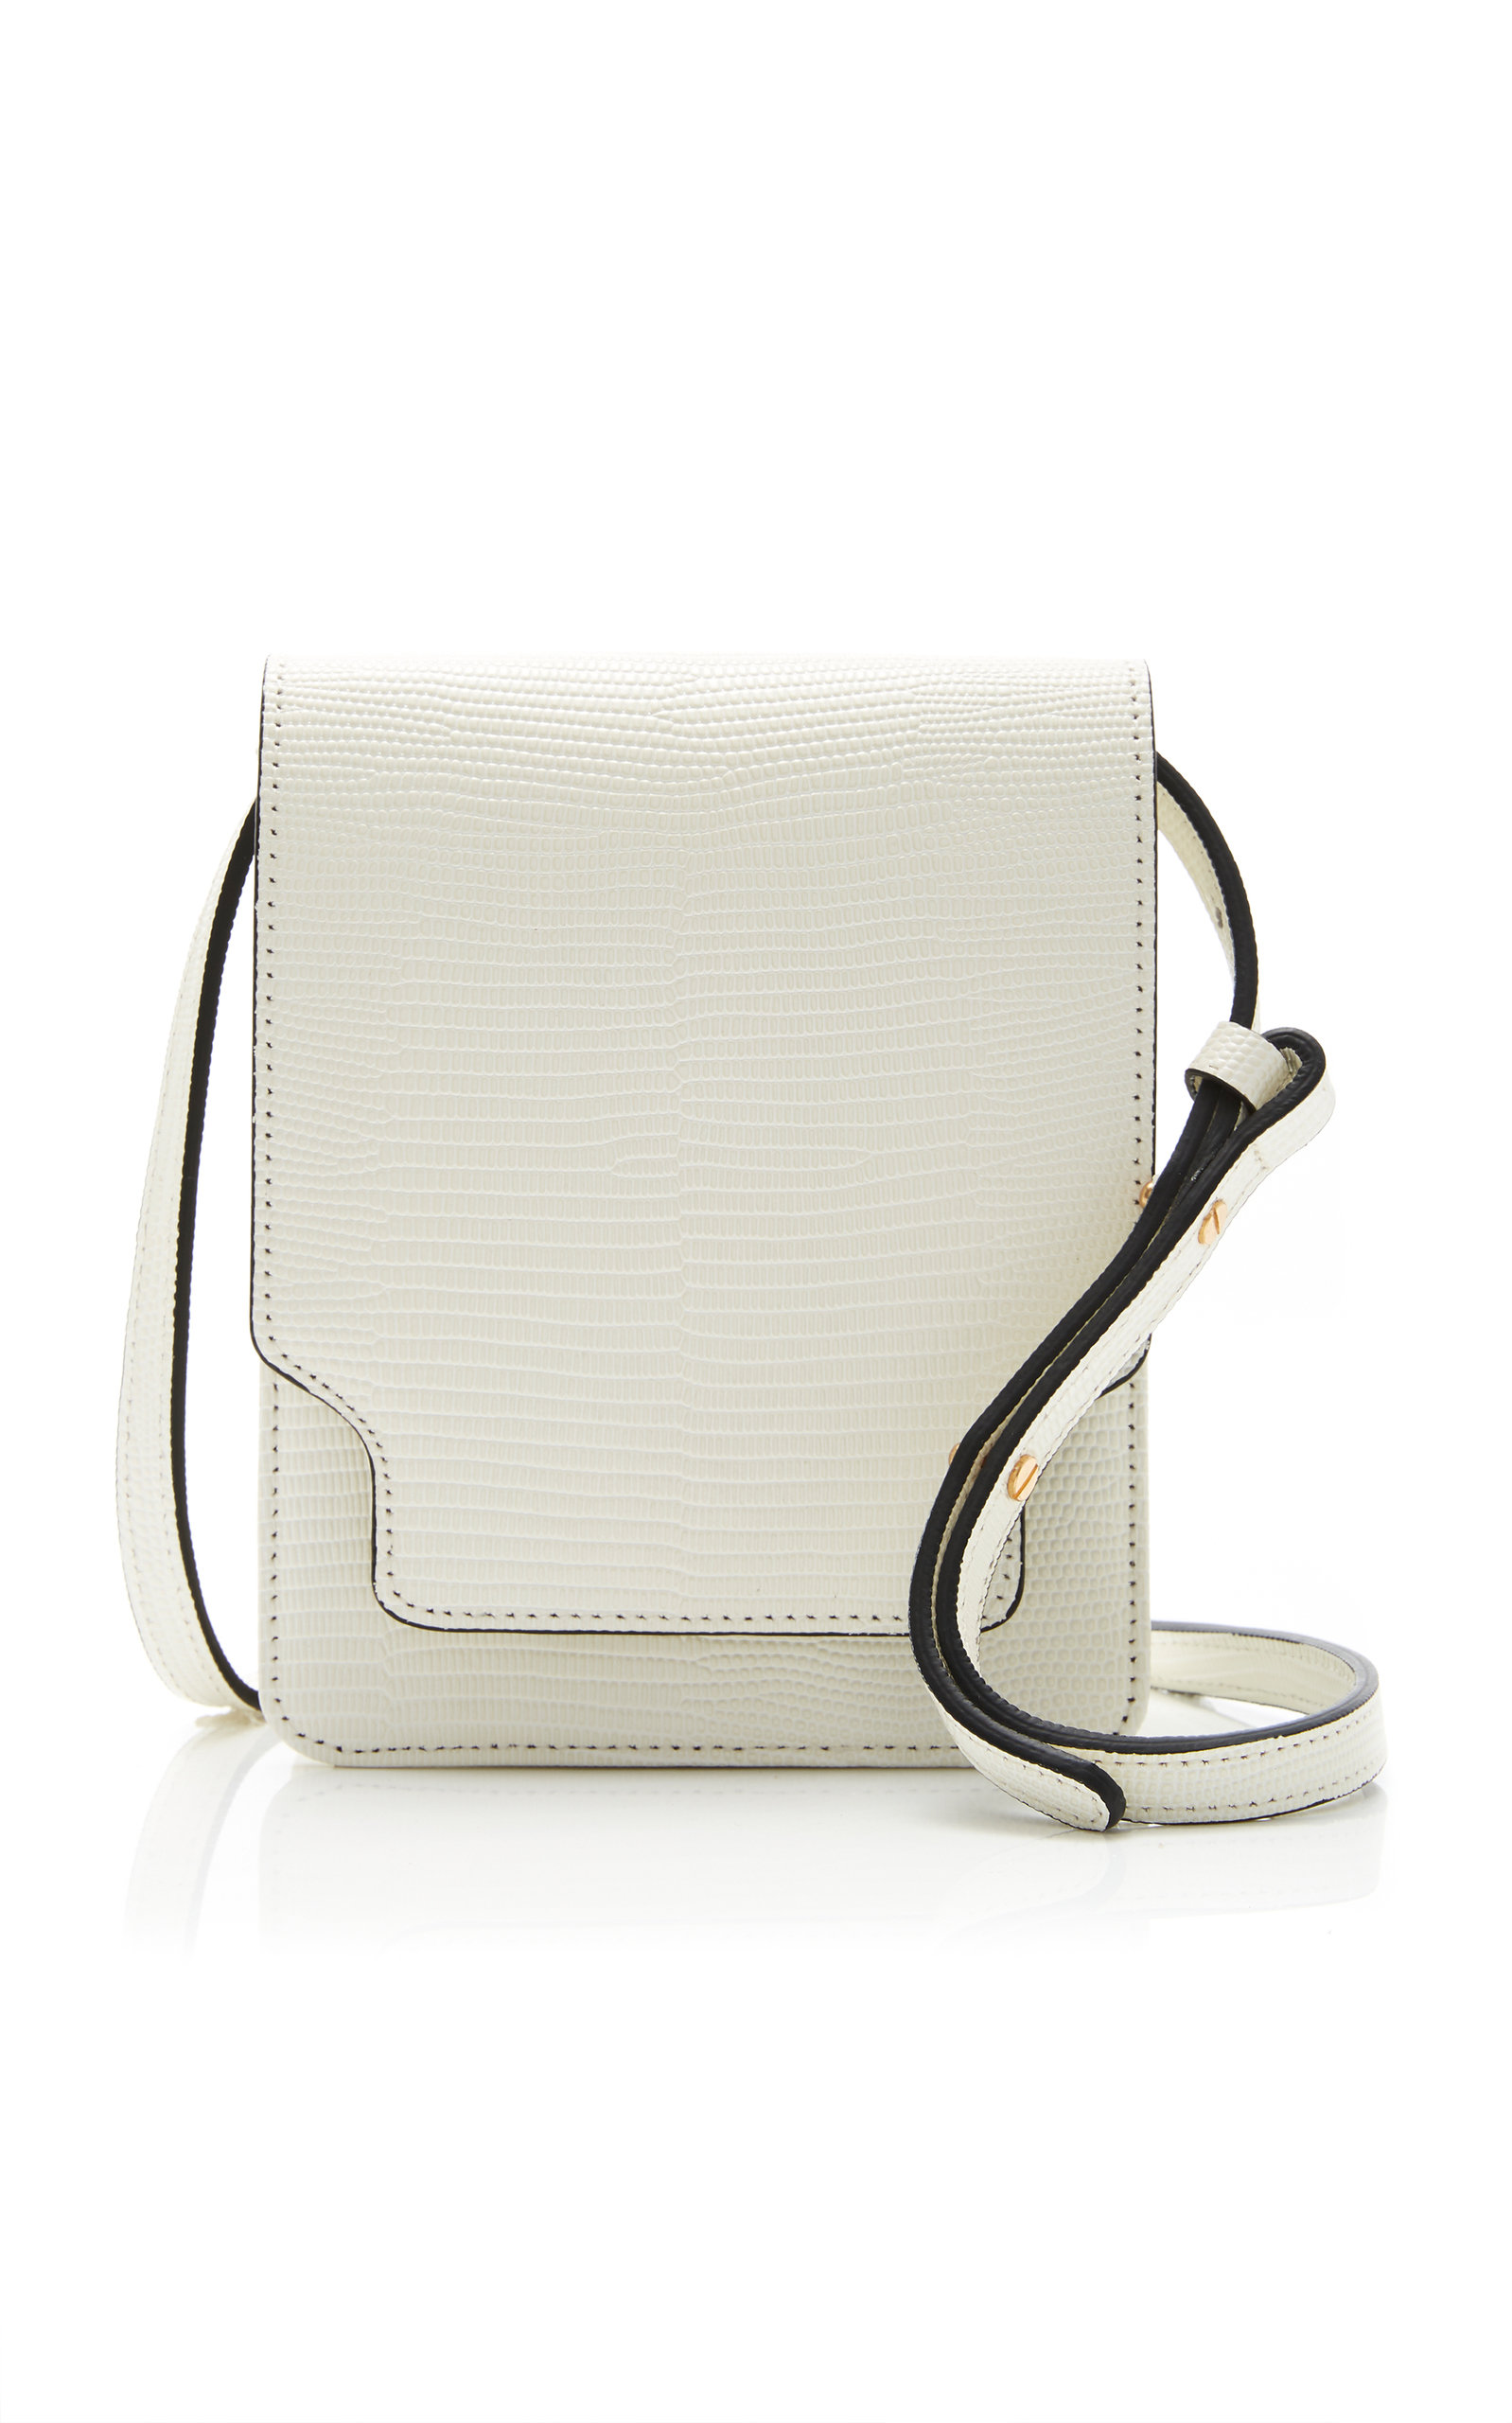 online retailer super cute highly coveted range of Pump Classic Lizard-Effect Leather Crossbody Bag